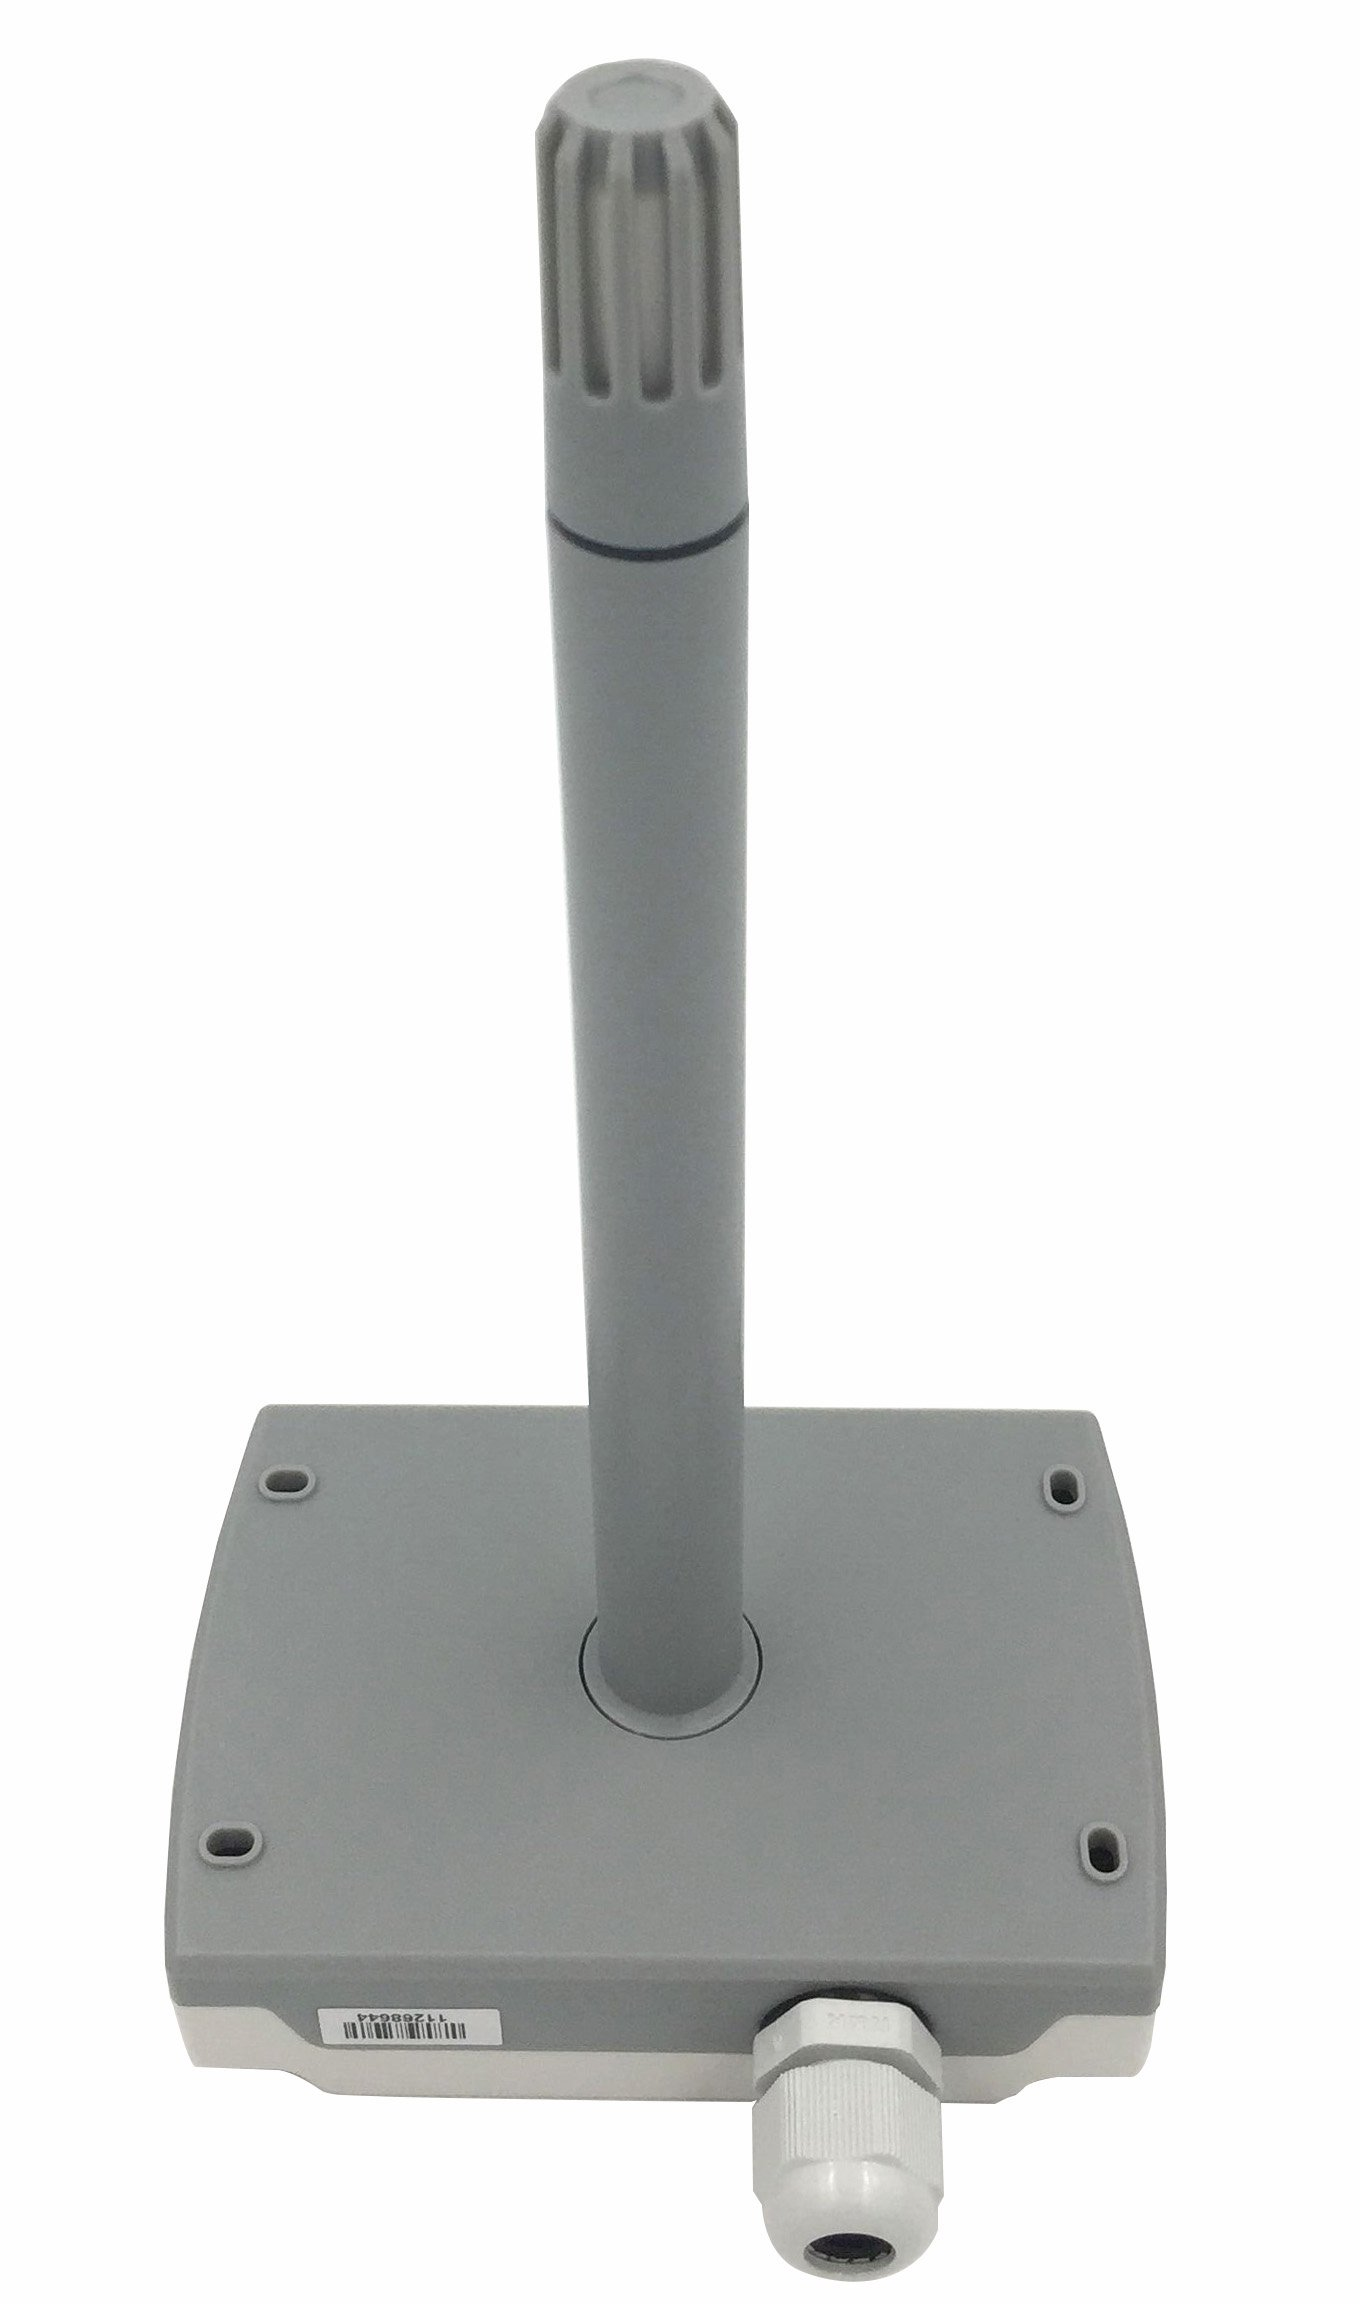 TEREN Duct Mount Temperature & Humidity Transmitter, H2N322100, 3% Accuracy, 4-20mA Output by TEREN (Image #2)